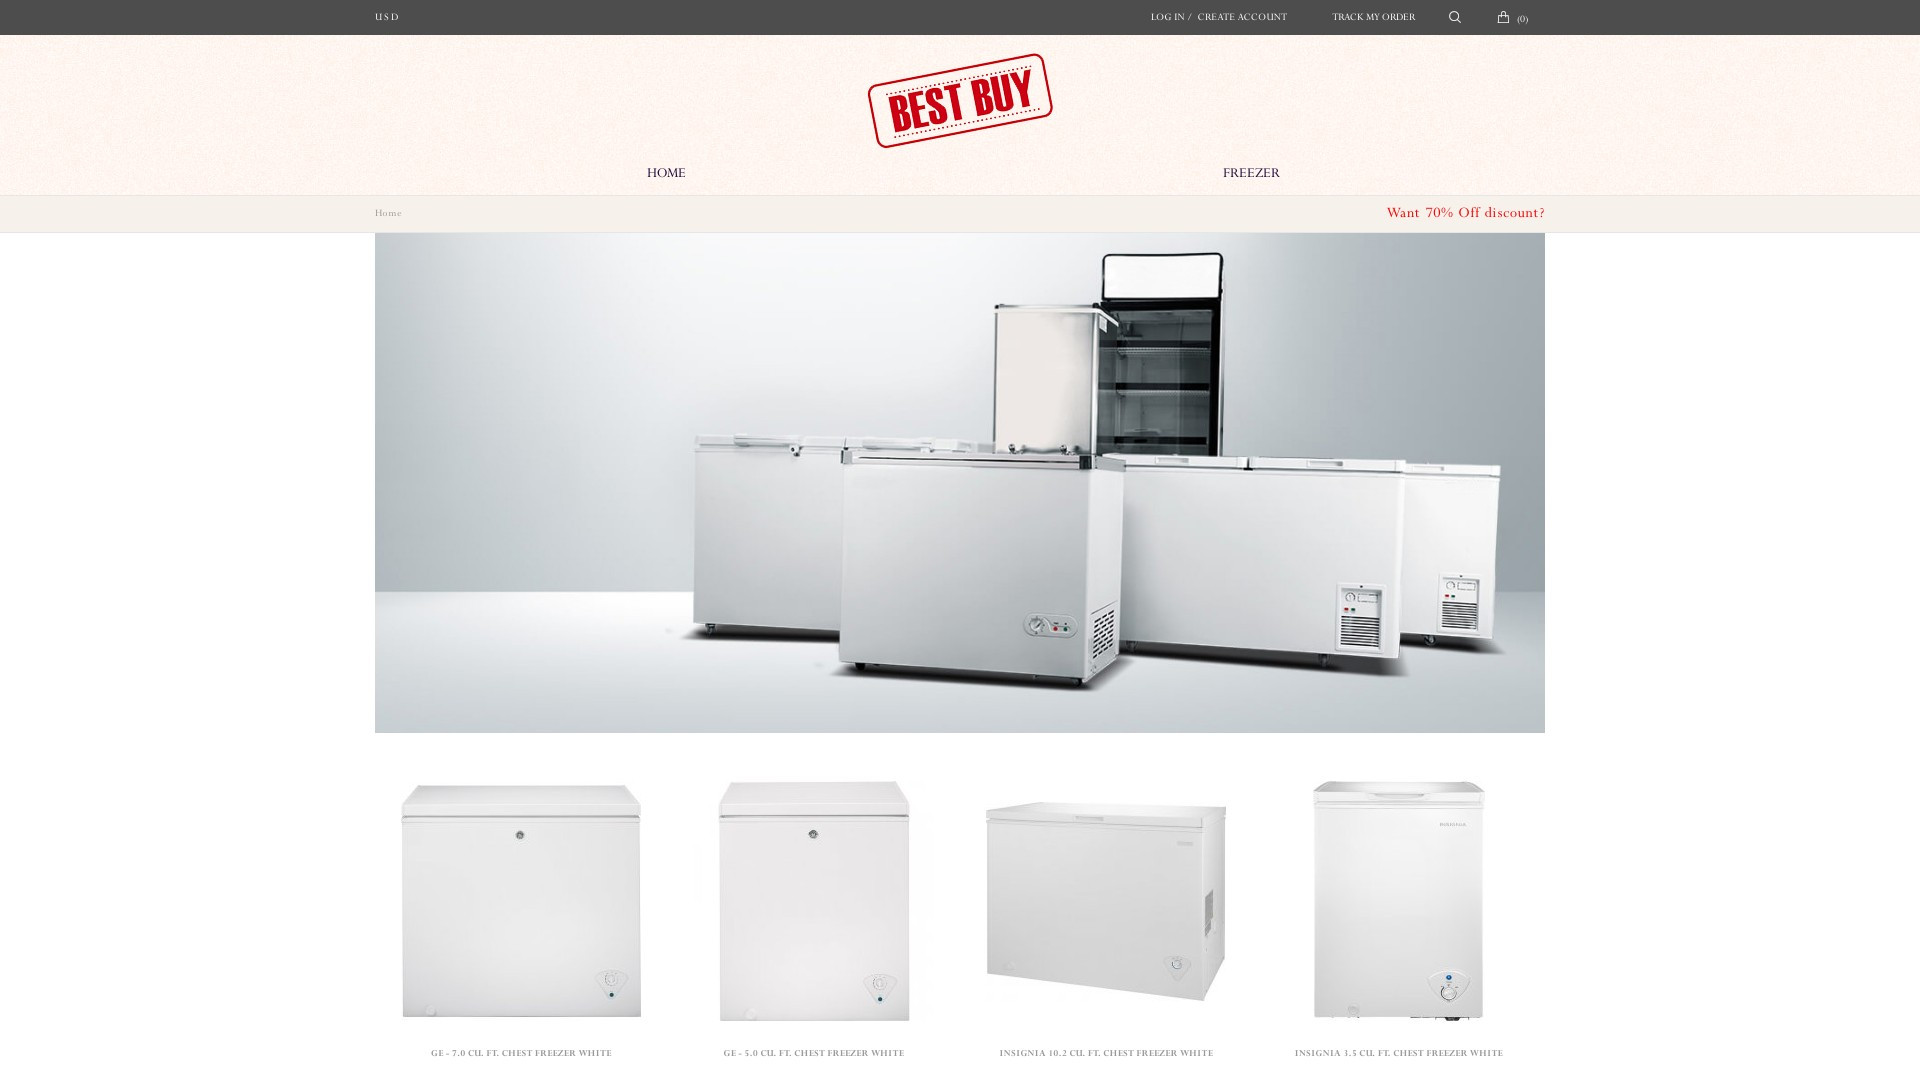 Thishopsi Scam  Review of the Fake Online Freezer Store